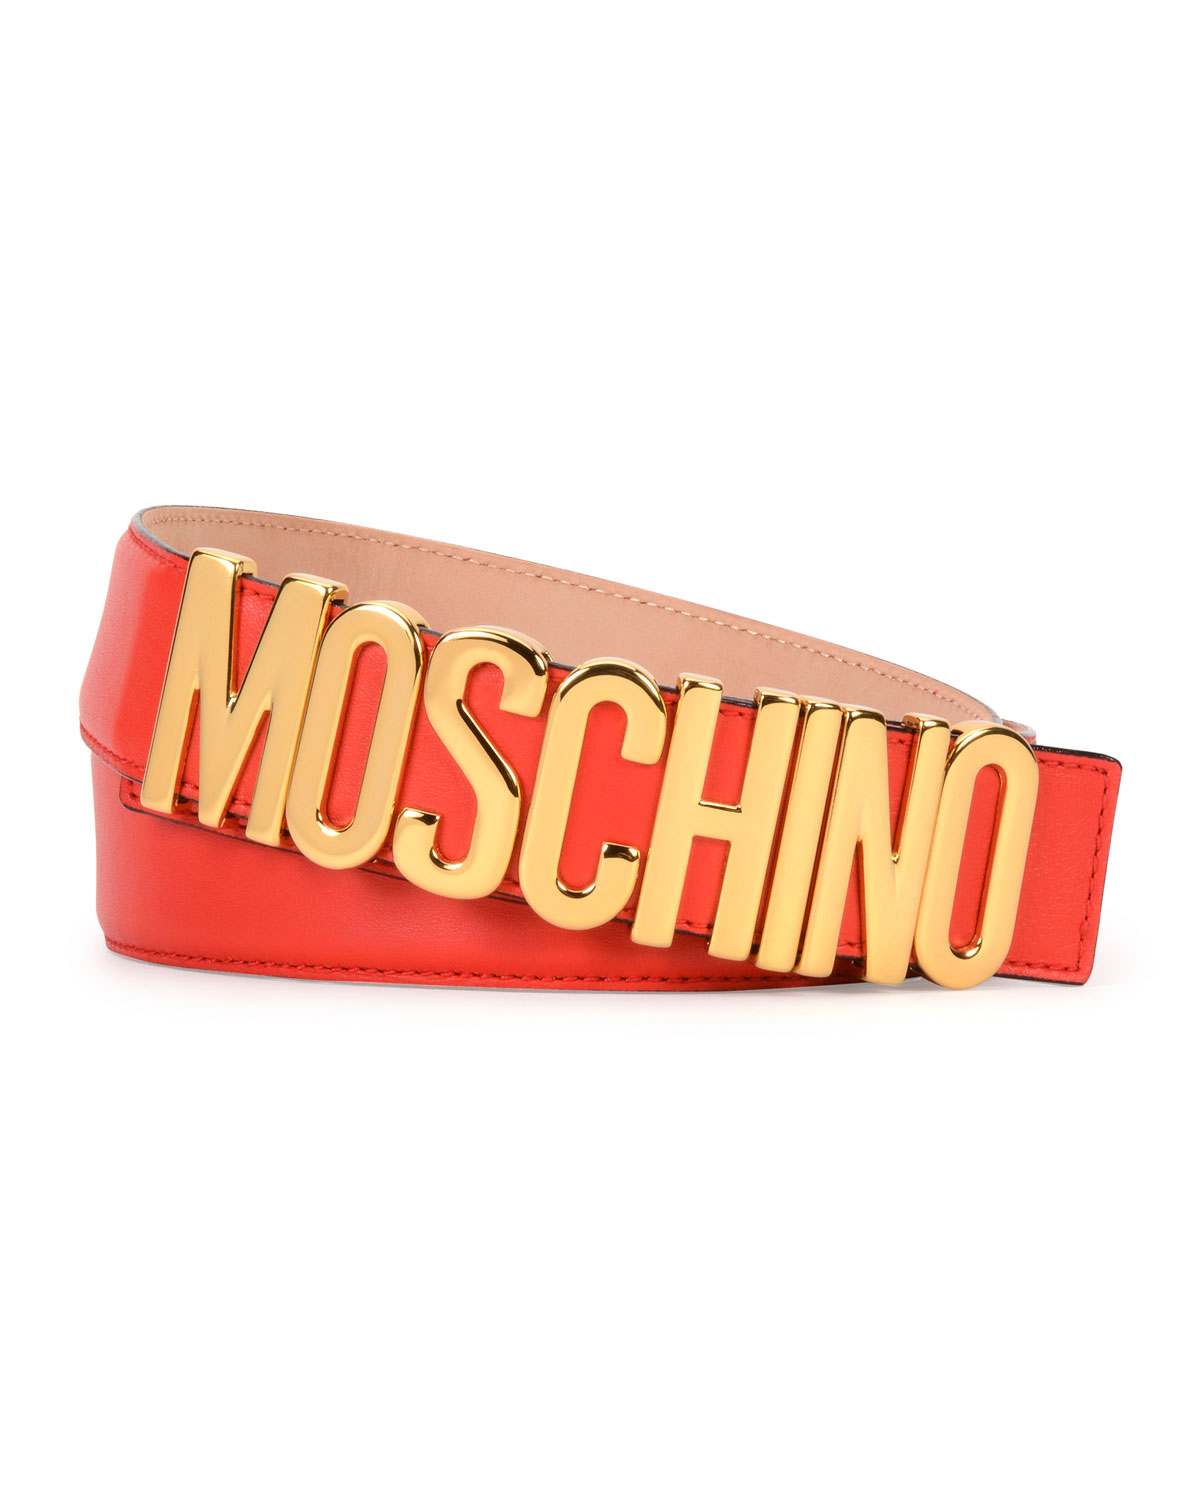 df12573f95 Moschino Large Logo Adjustable Leather Belt, Red/Gold | Neiman Marcus